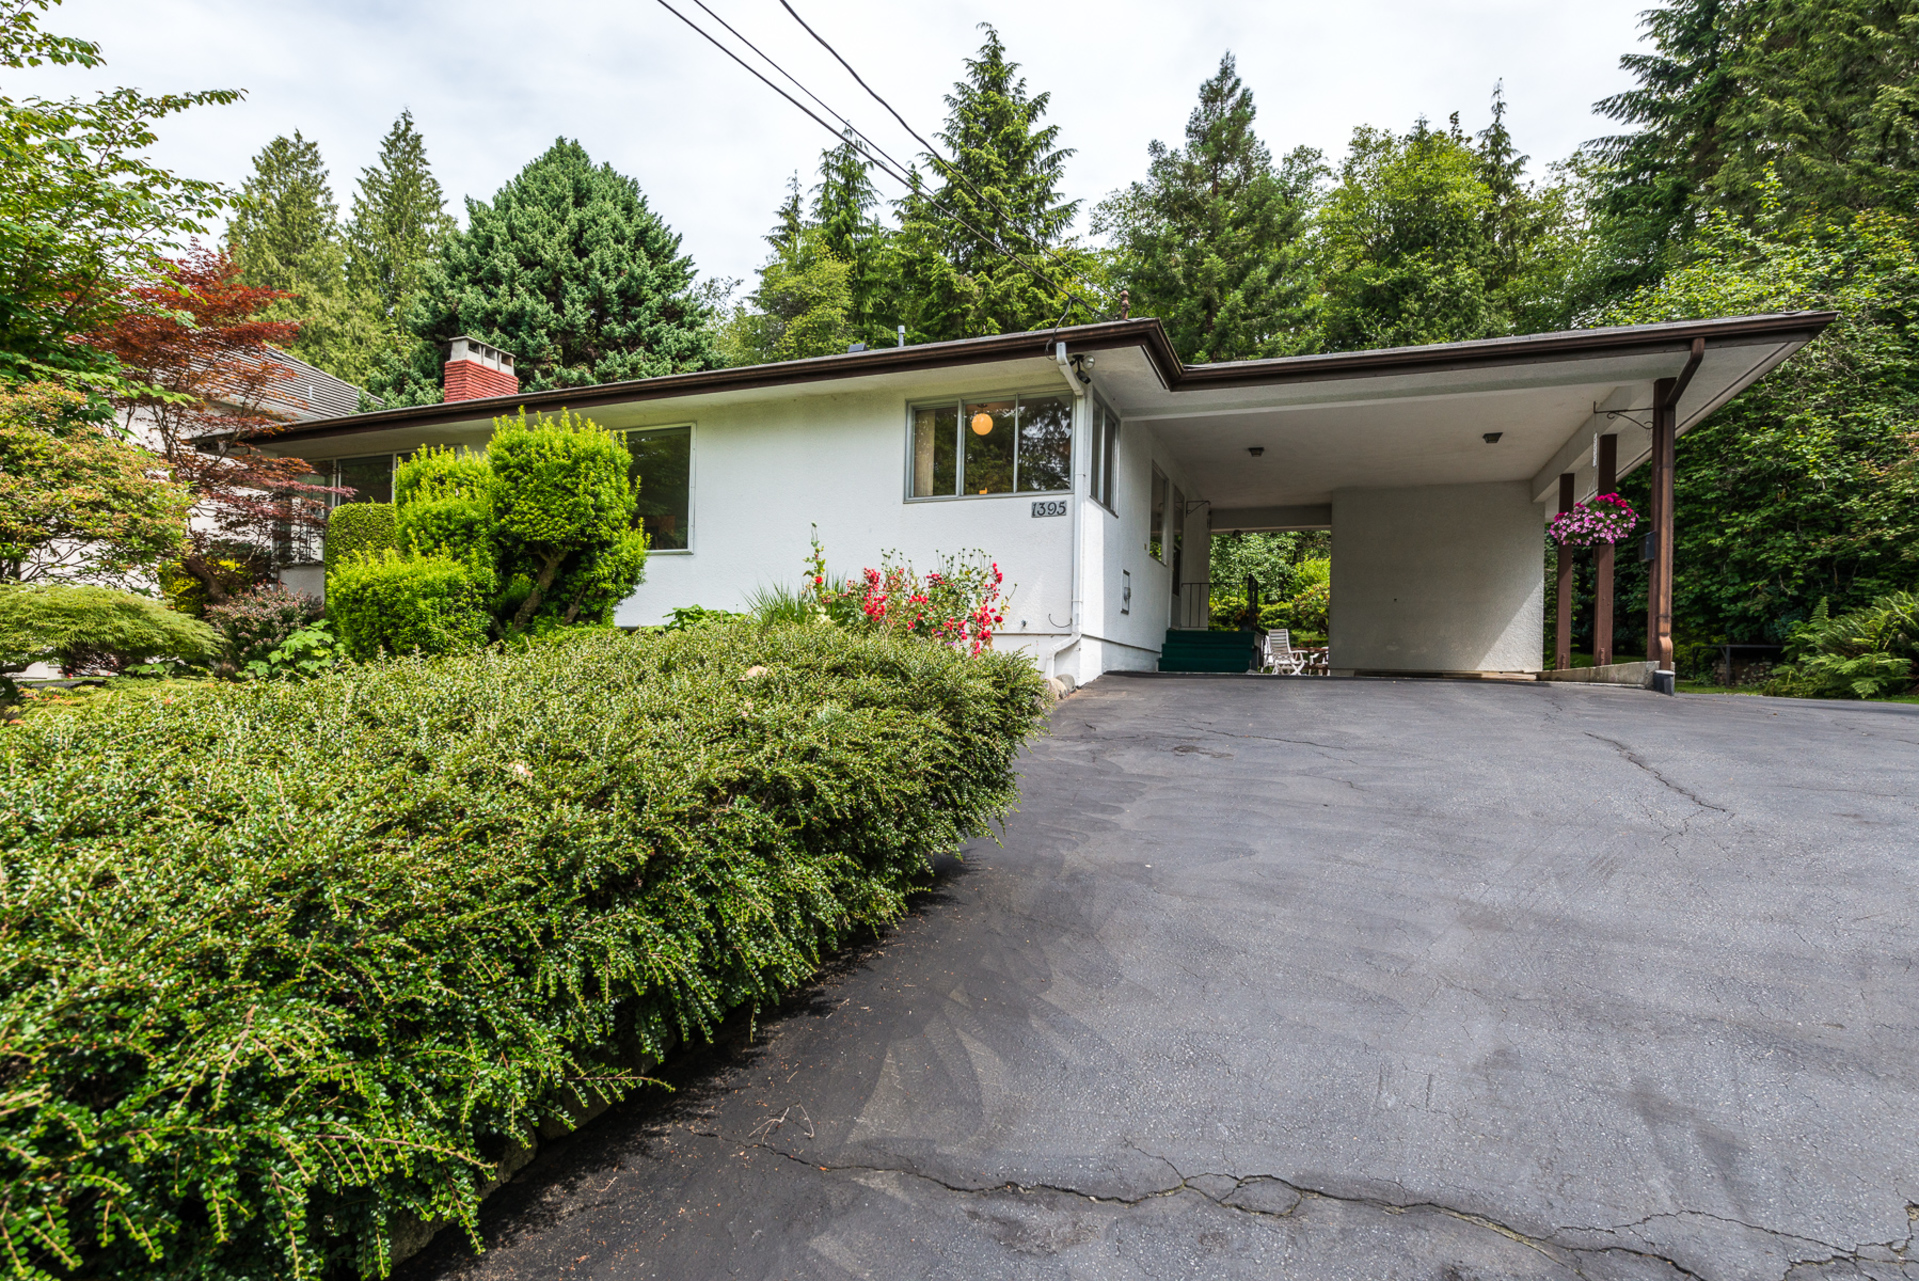 1395-Ioco-Road-Port-Moody-360hometours-02s at 1395 Ioco Road, Barber Street, Port Moody